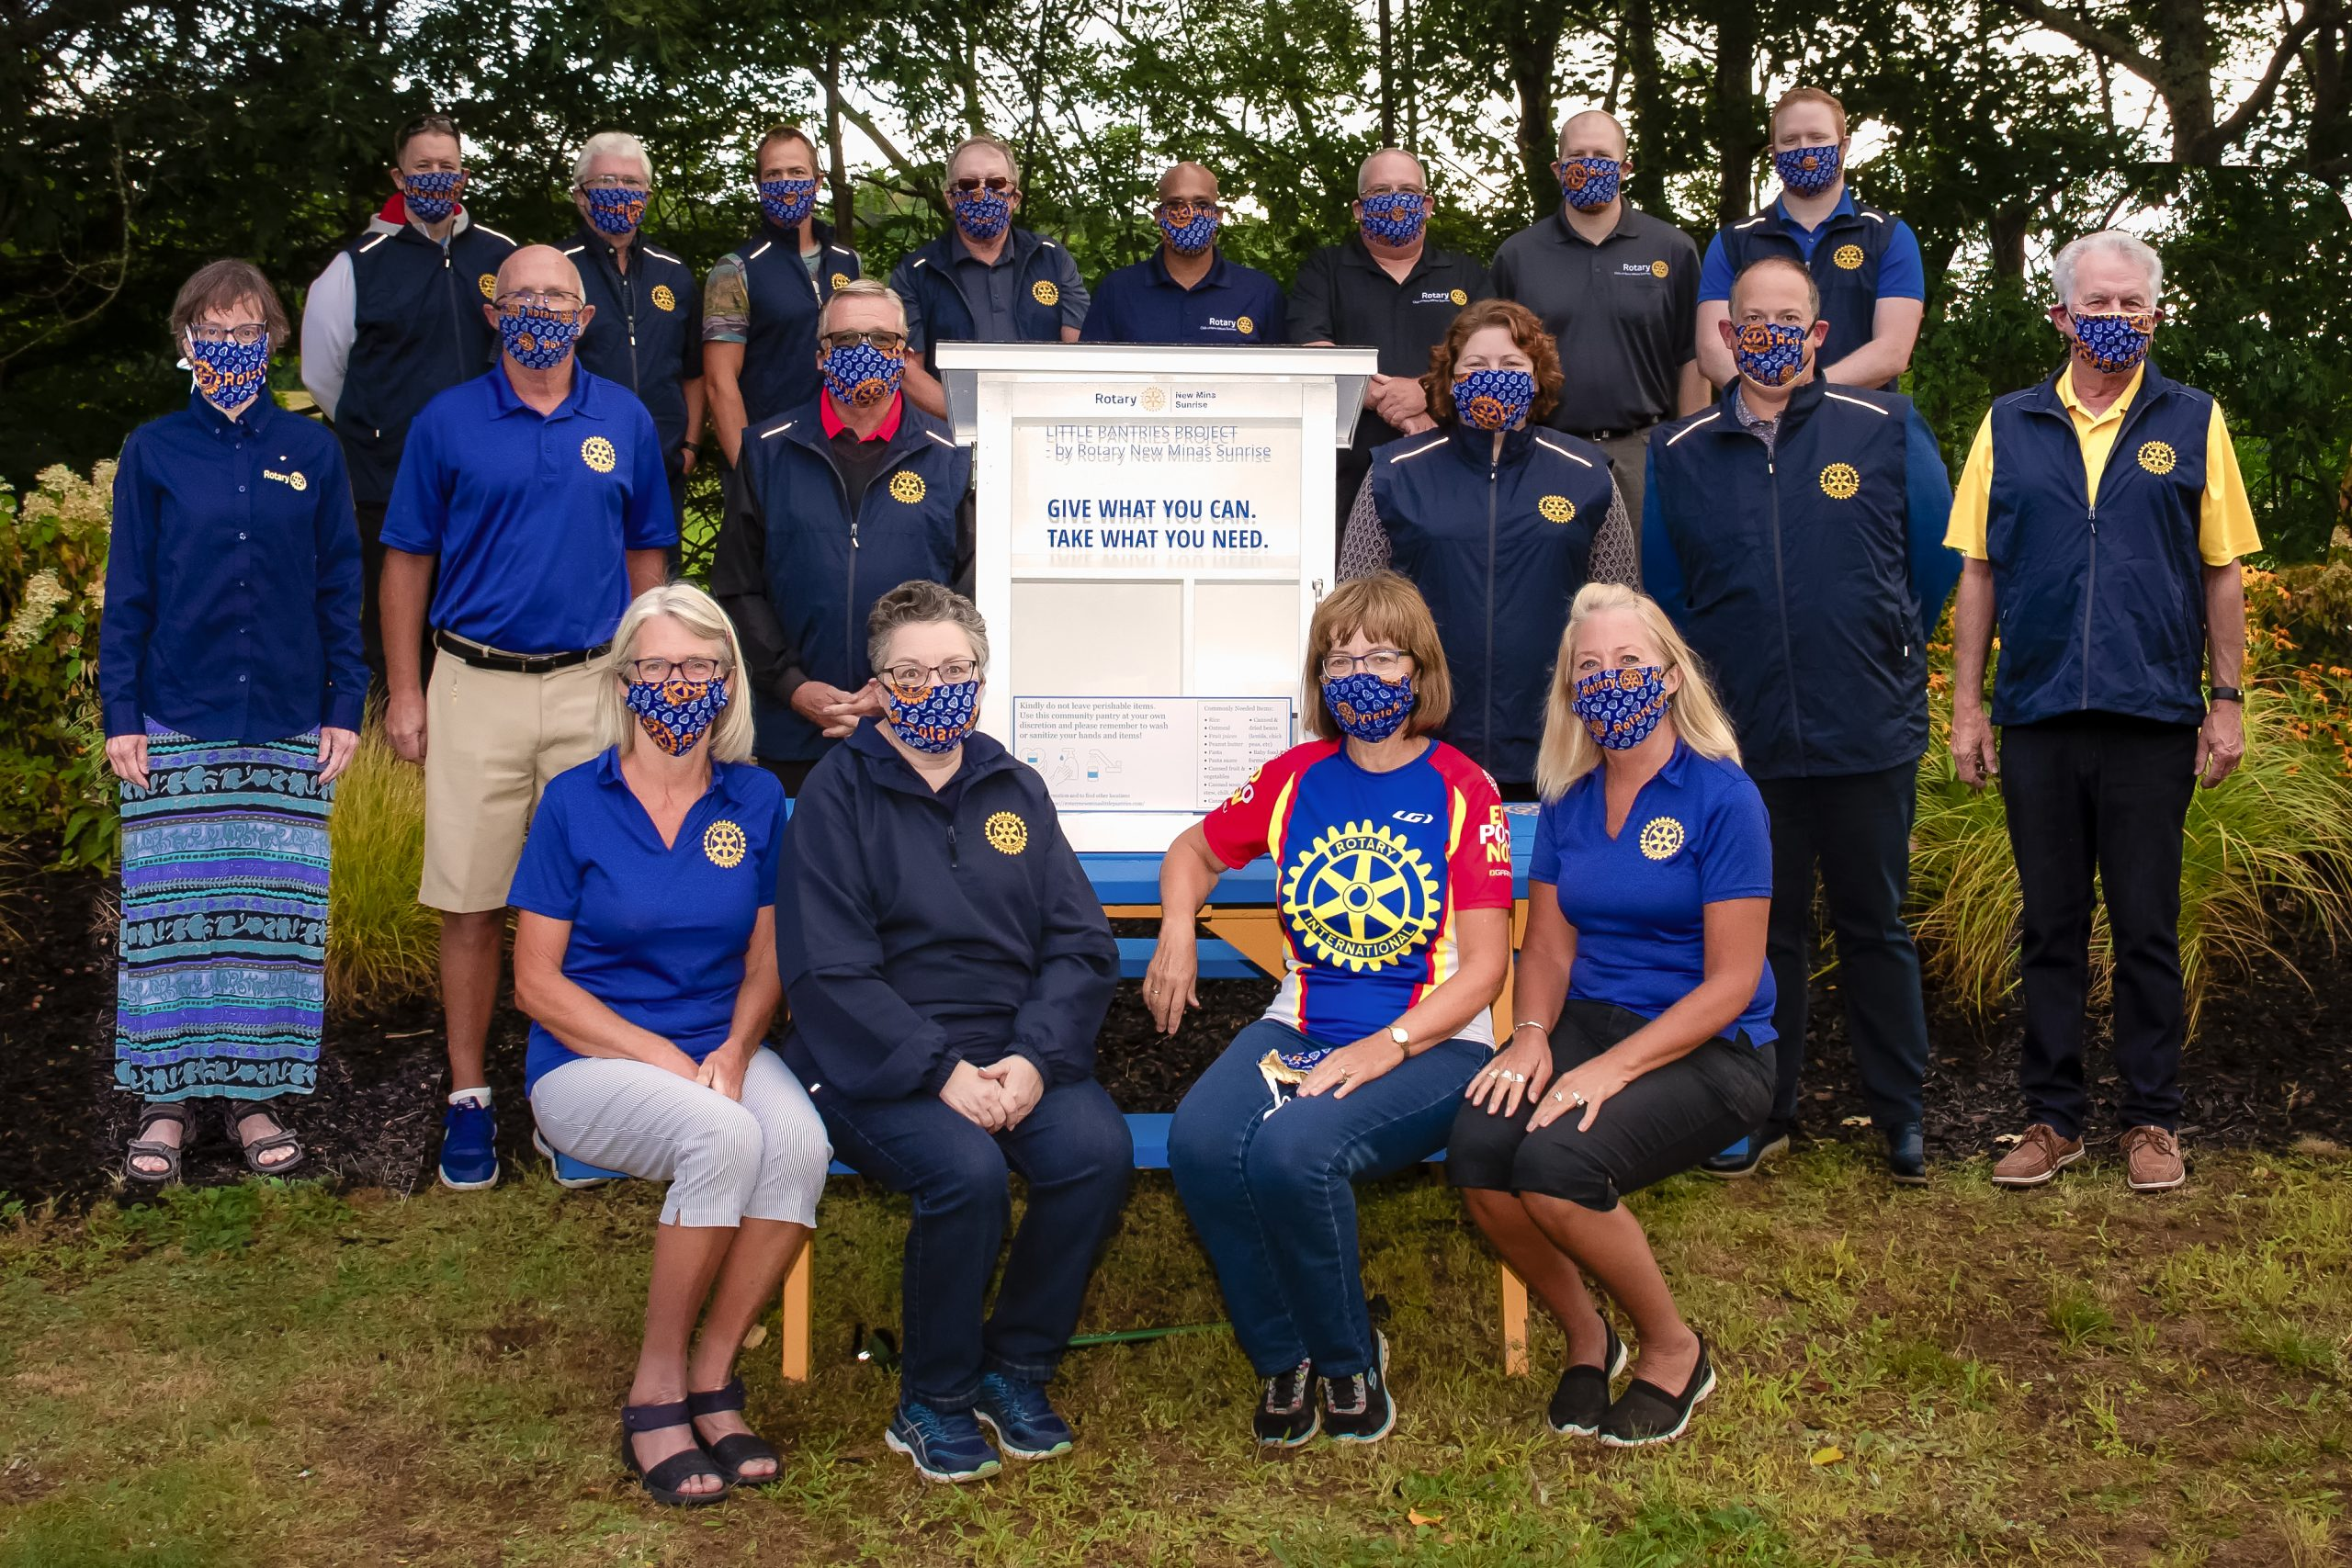 The Rotary Club of New Minas  – The Free Little Pantry